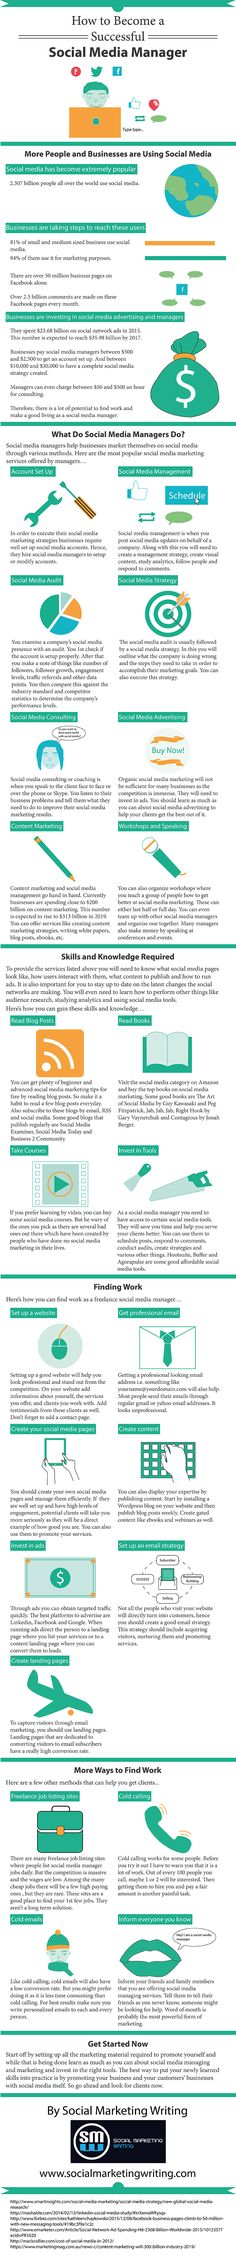 How to Become a Social Media Manager #Infographic #HowTo #SocialMedia